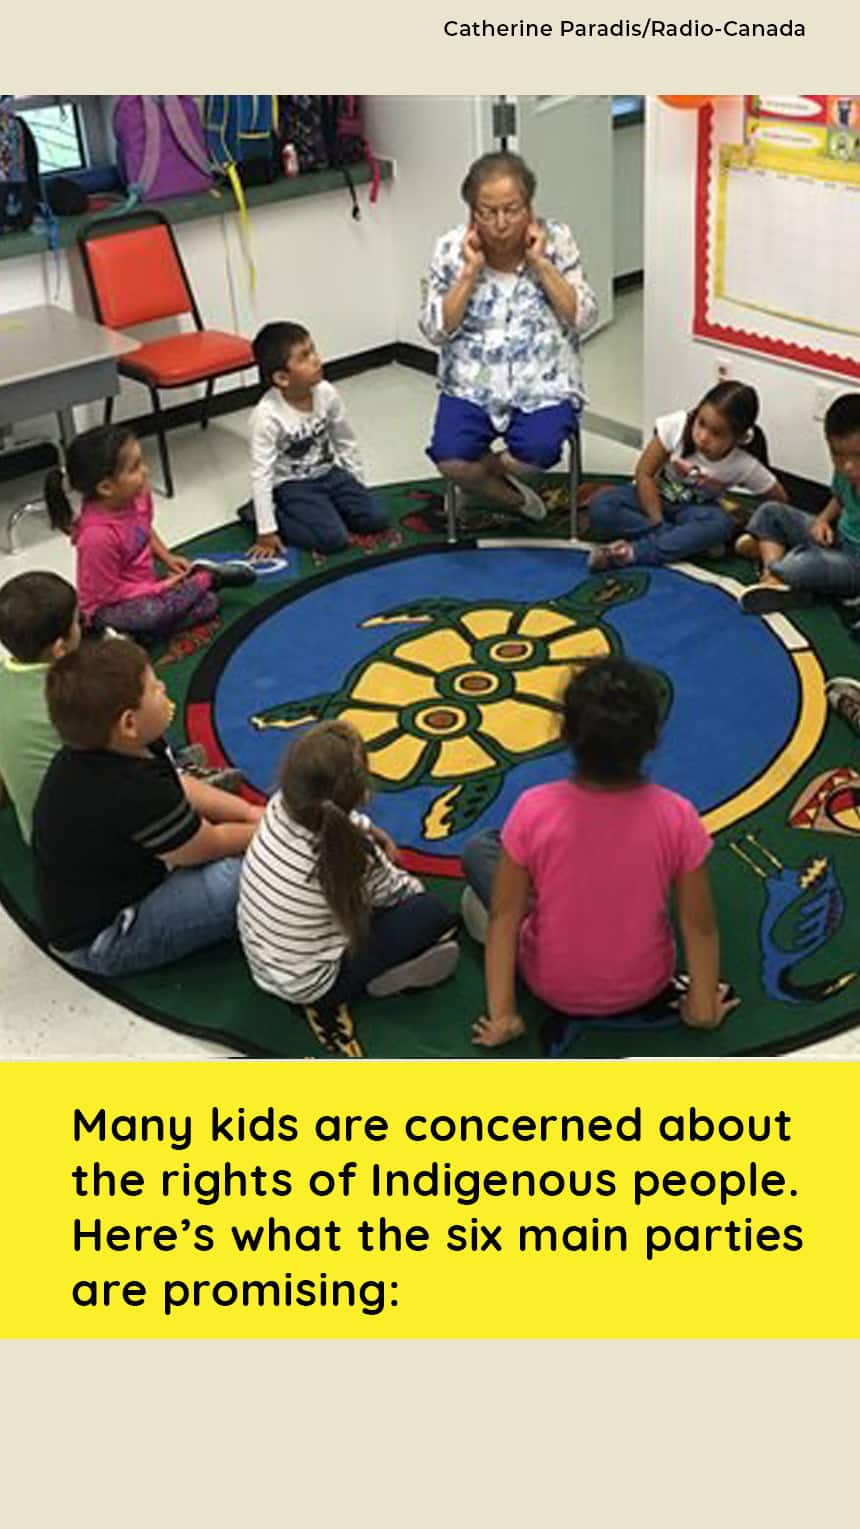 An image of indigenous kids in a circle in a classroom with text that says,  Many kids are concerned about the rights of Indigenous people. Here's what the six main parties are promising: